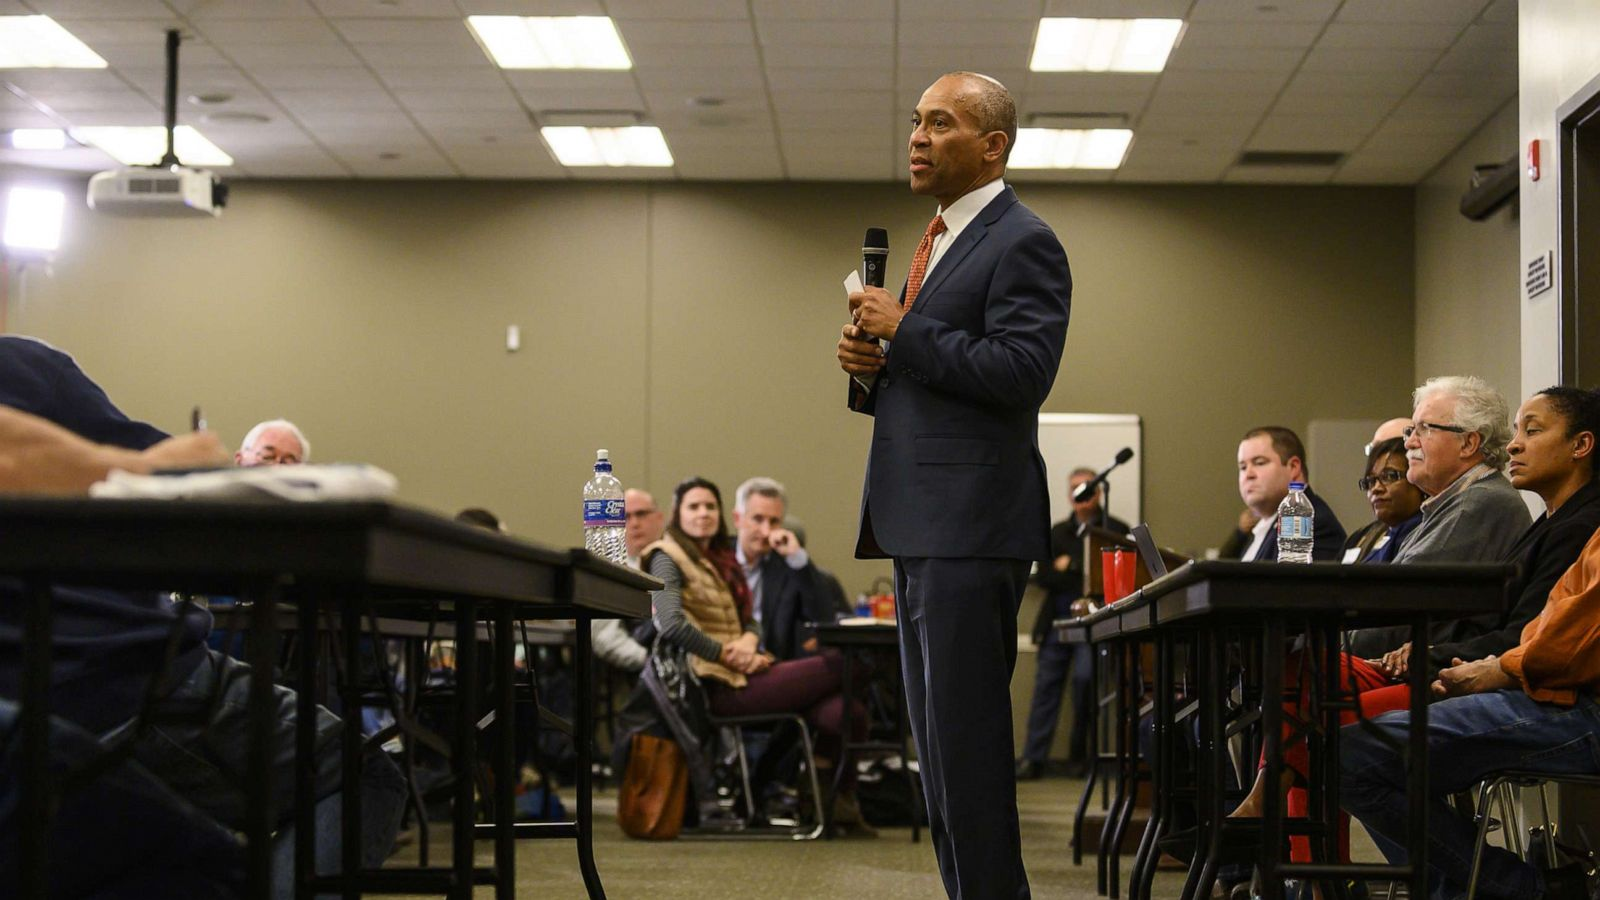 Deval Patrick 2020 Presidential Candidate Official Campaign Literature